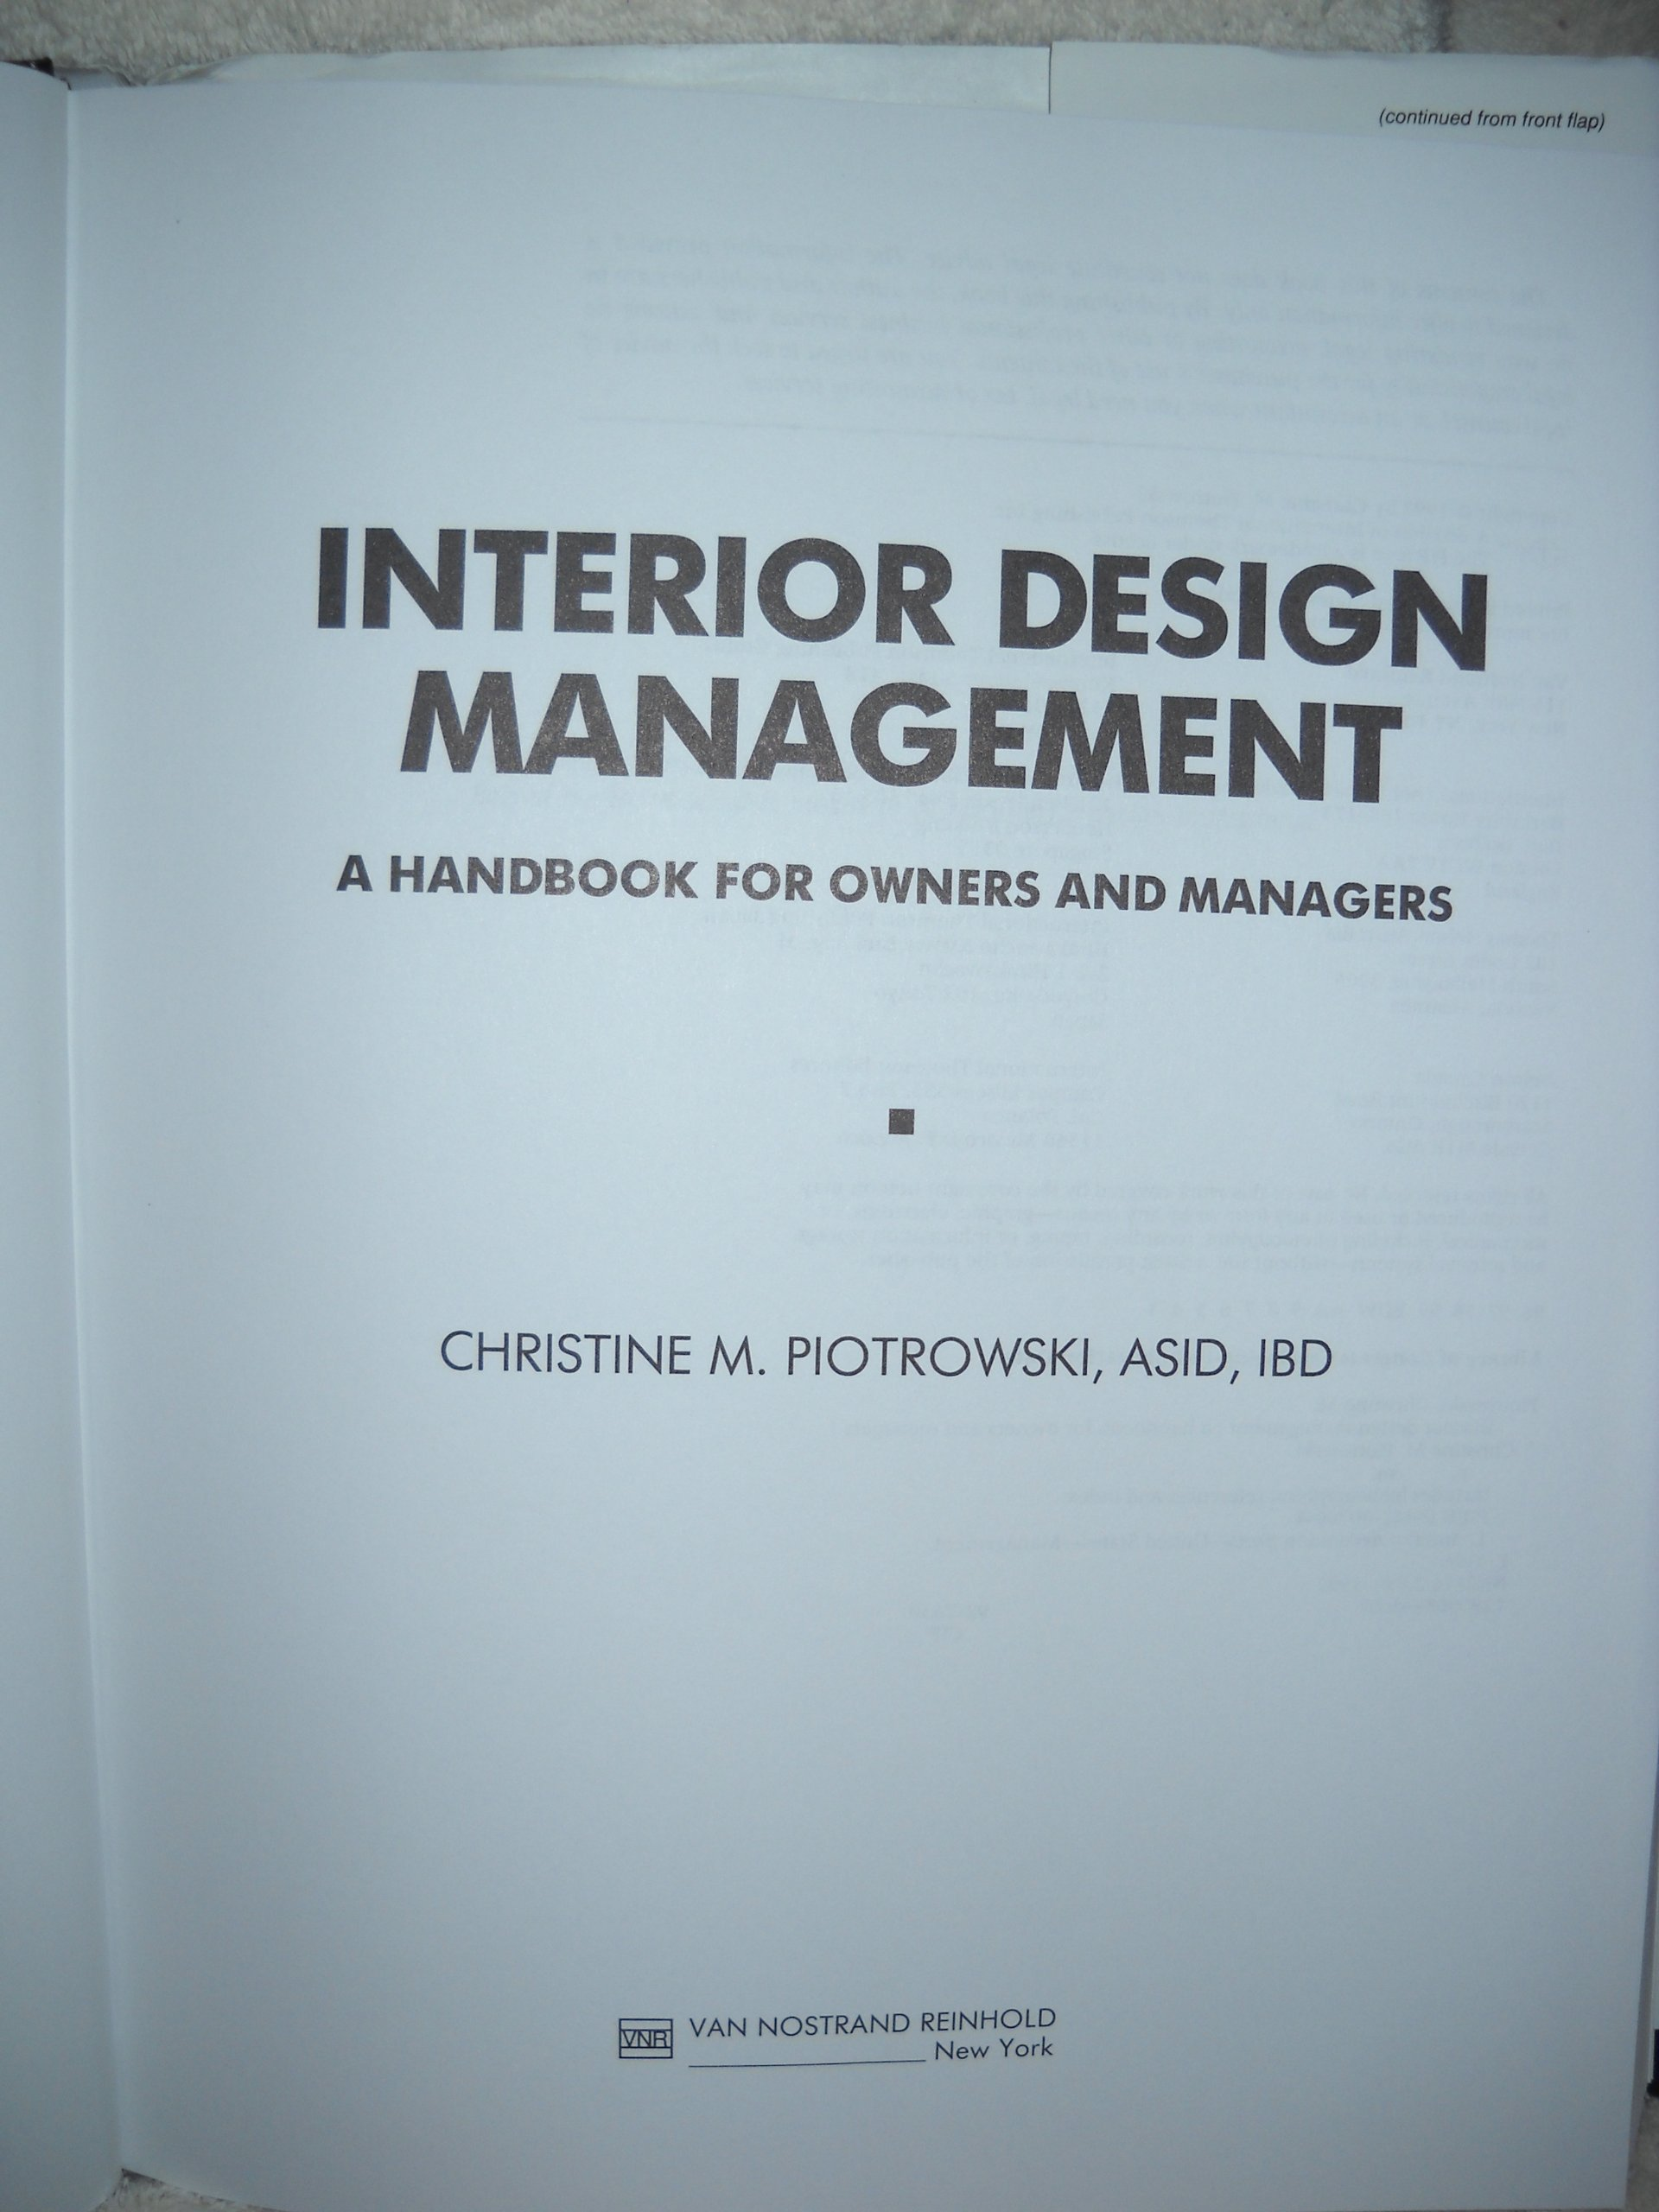 Amazonin Buy Interior Design Management A Handbook For Owners And Managers Book Online At Low Prices In India